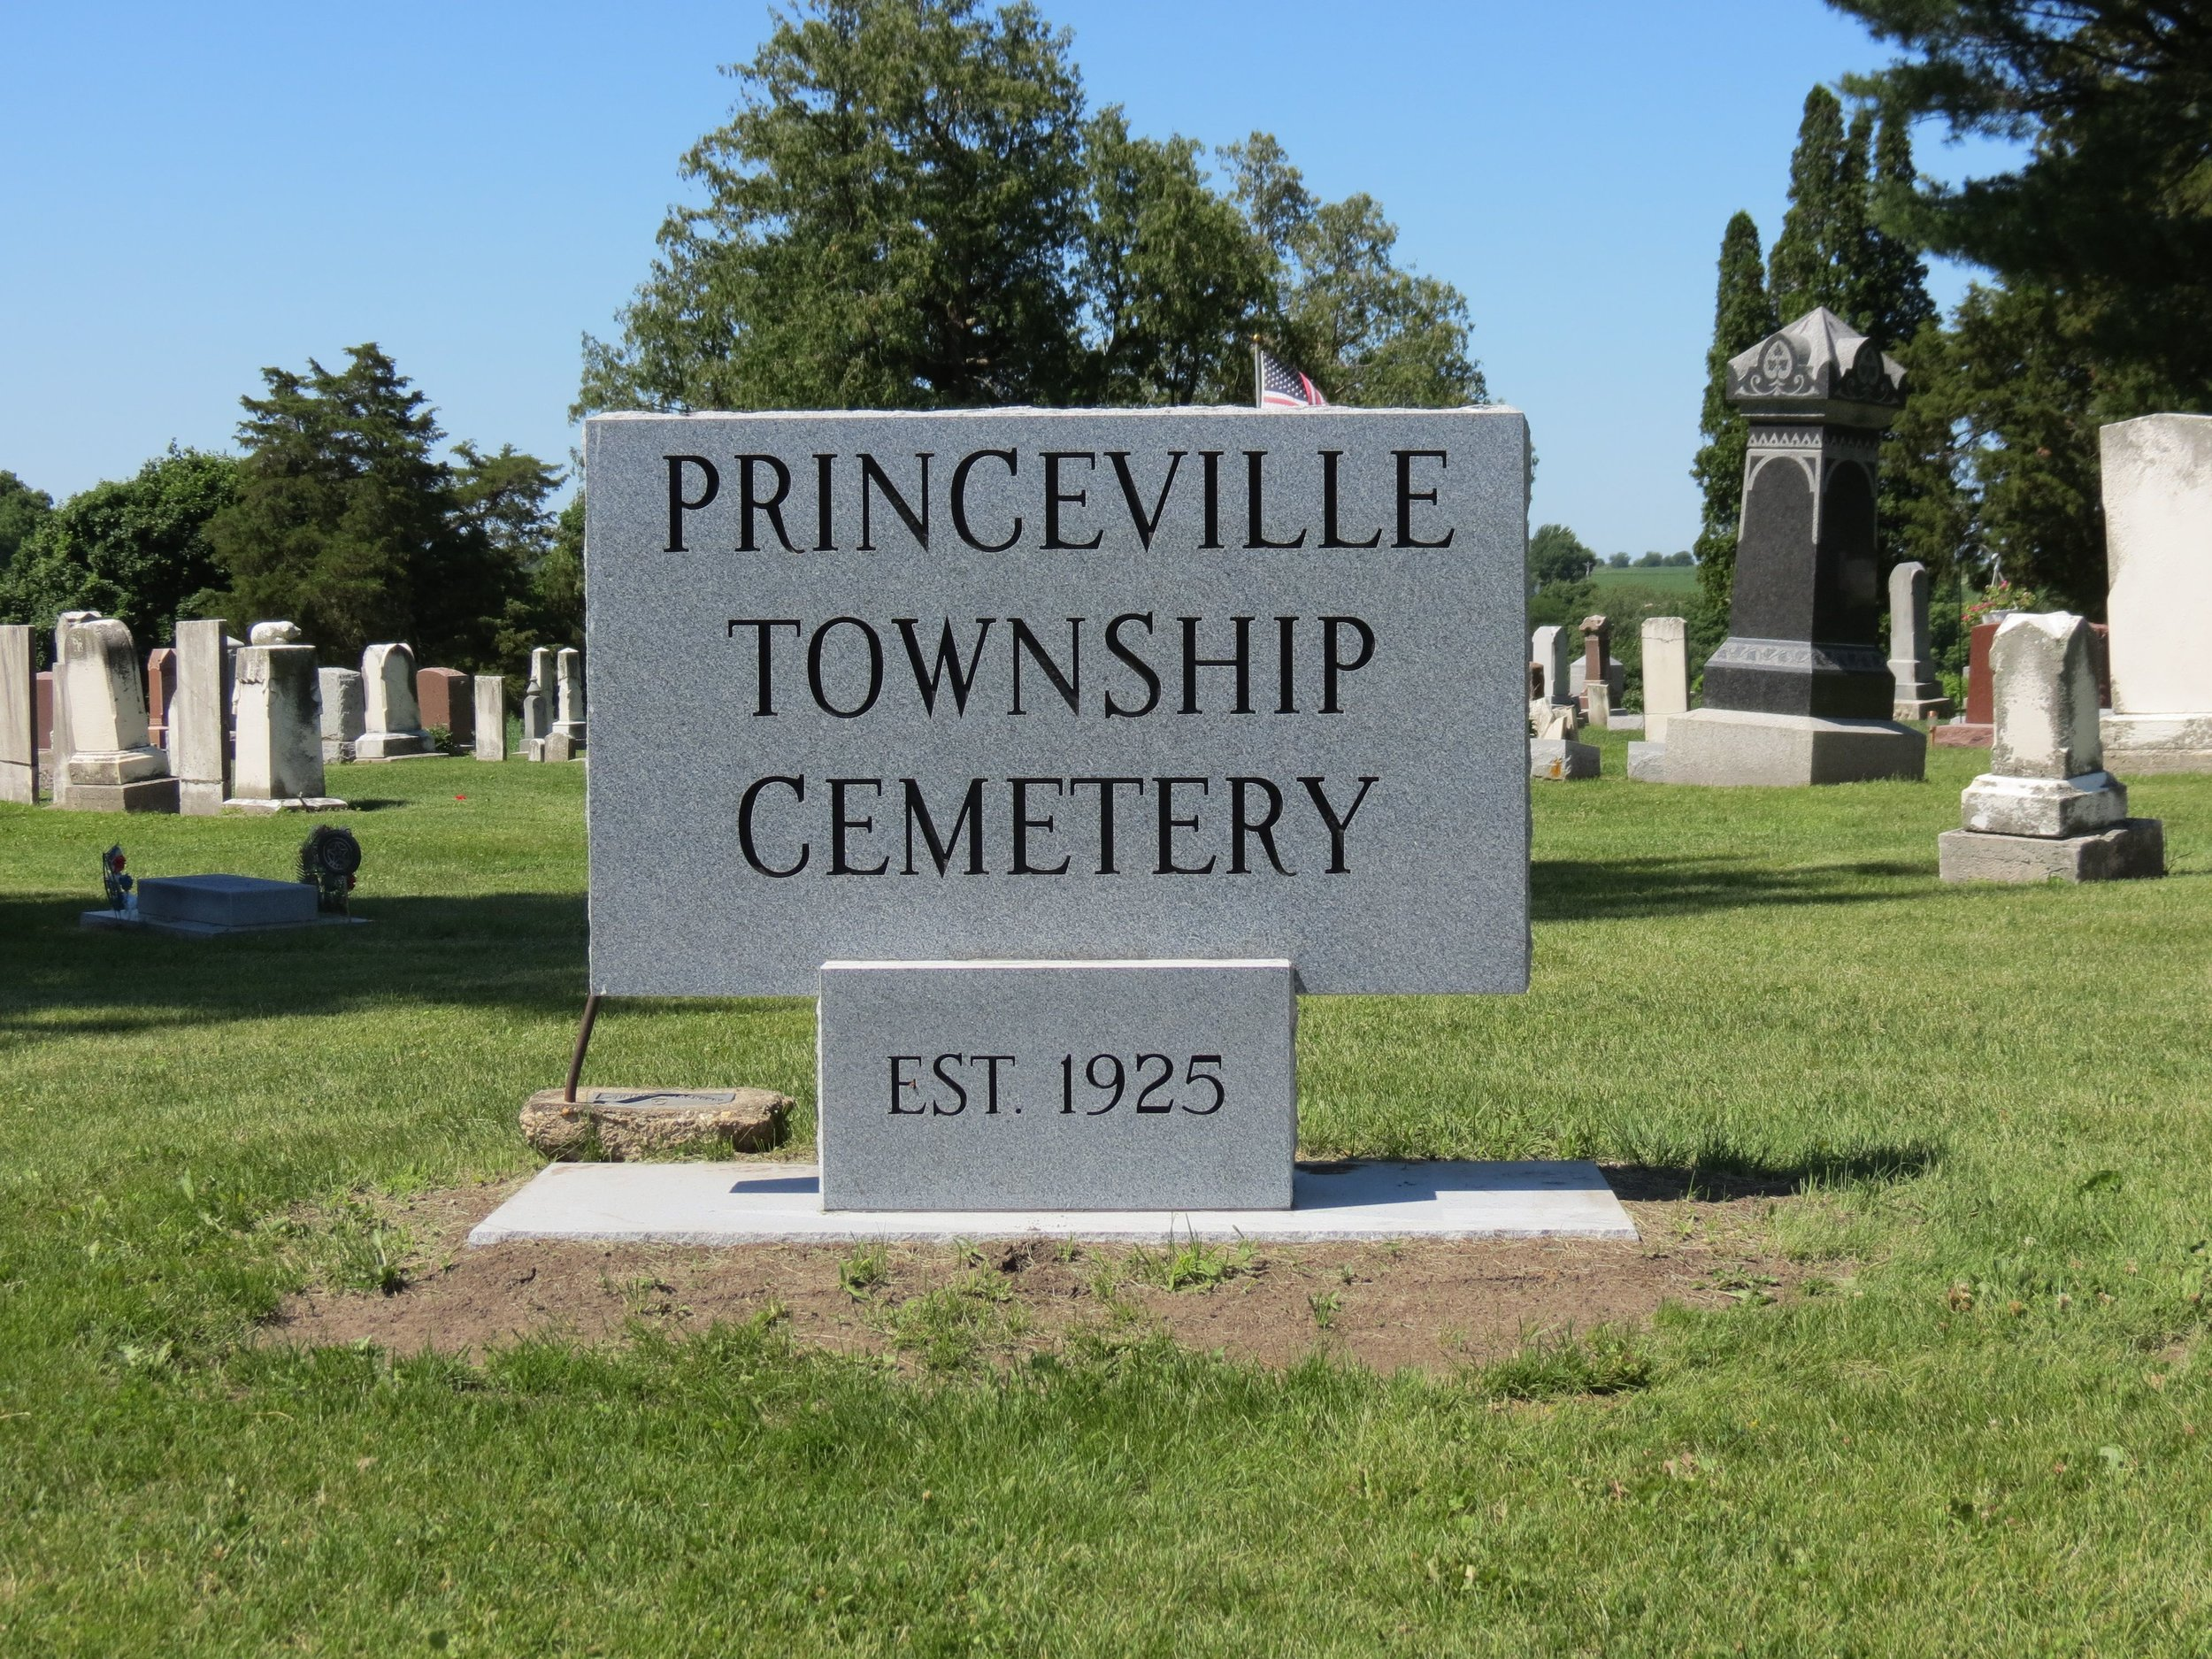 Princeville, IL - The Princeville Township Cemetery was established in 1925 on the site of a former cemetery. There are currently just over 5,000 plots in the cemetery that Cloudpoint will be creating a GIS cemetery management solution for.